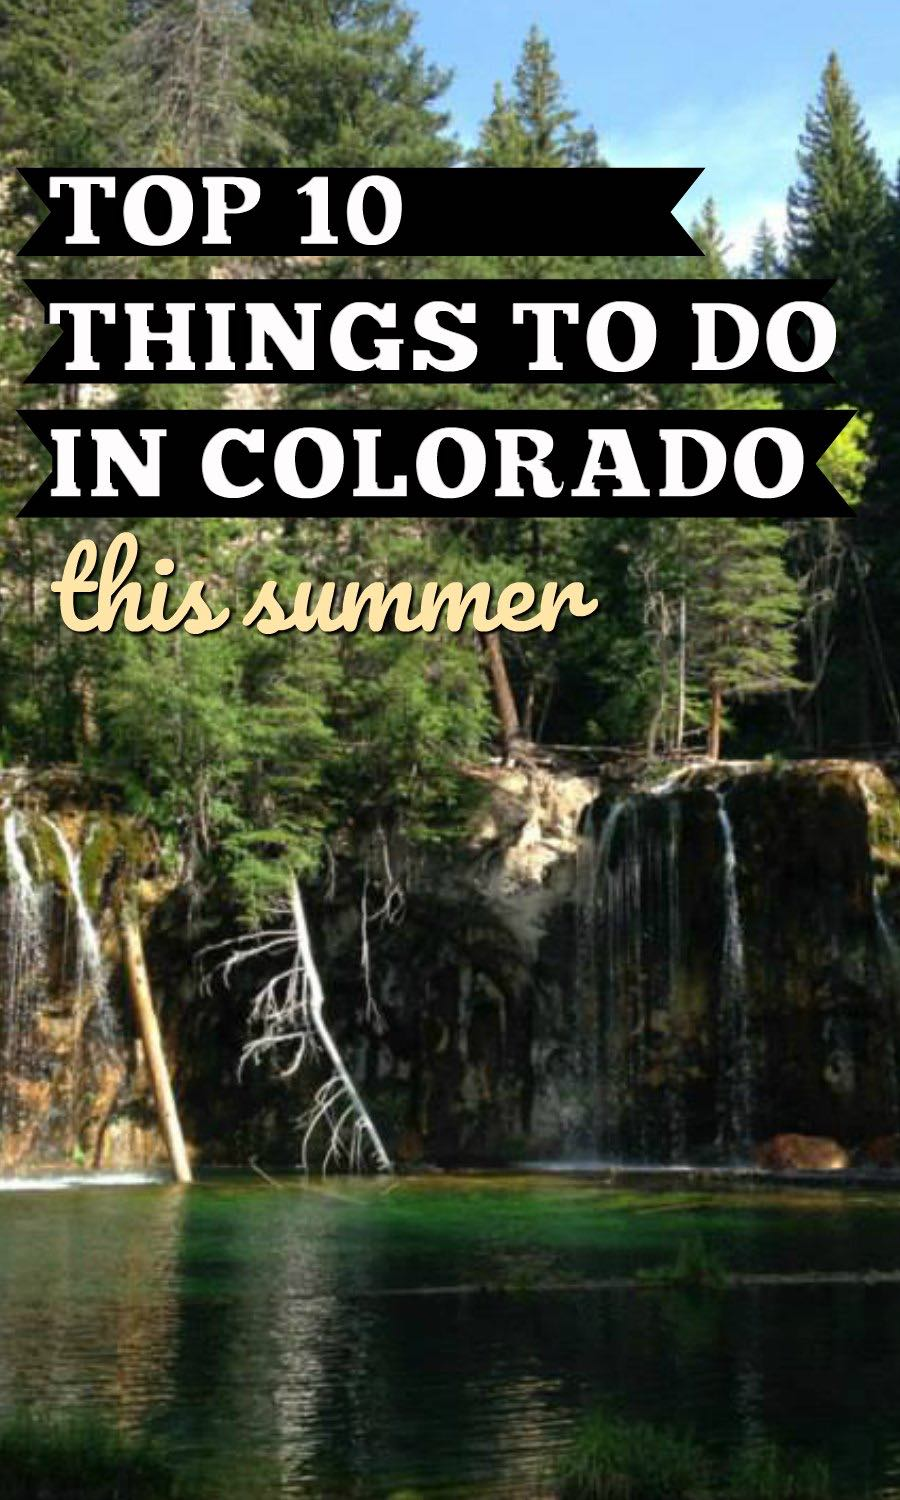 Things to do in Colorado this Summer are amazing